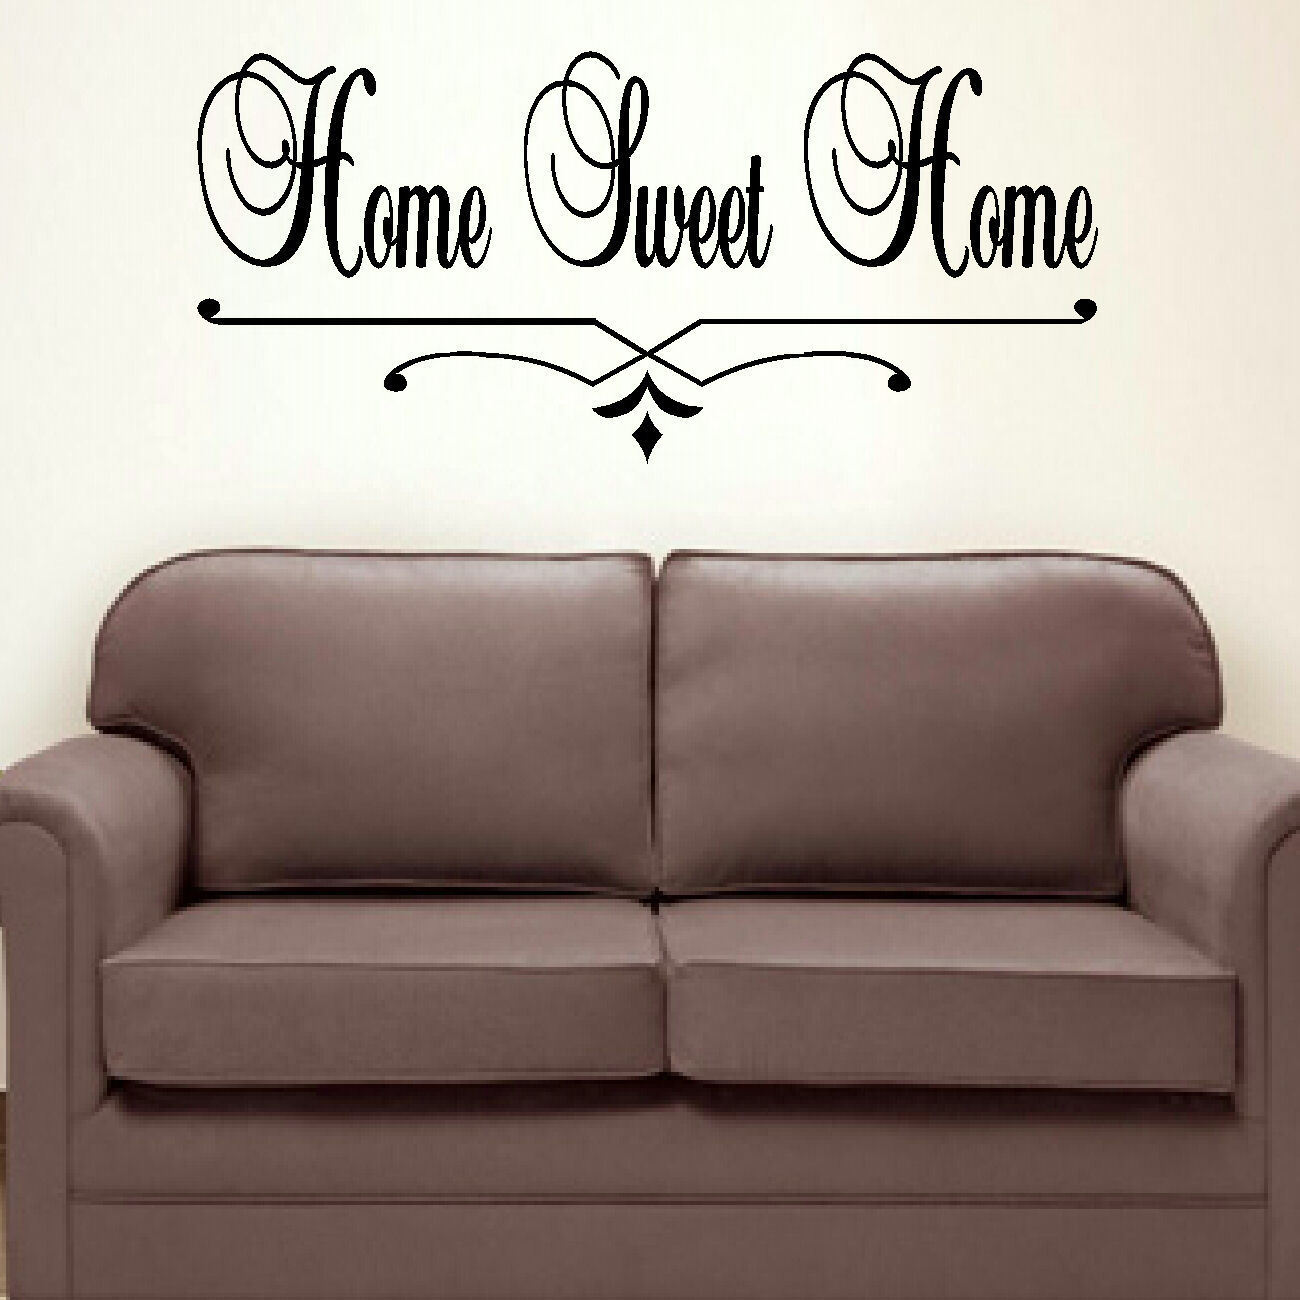 LARGE BEDROOM QUOTE HOME SWEET HOME WALL ART STICKER